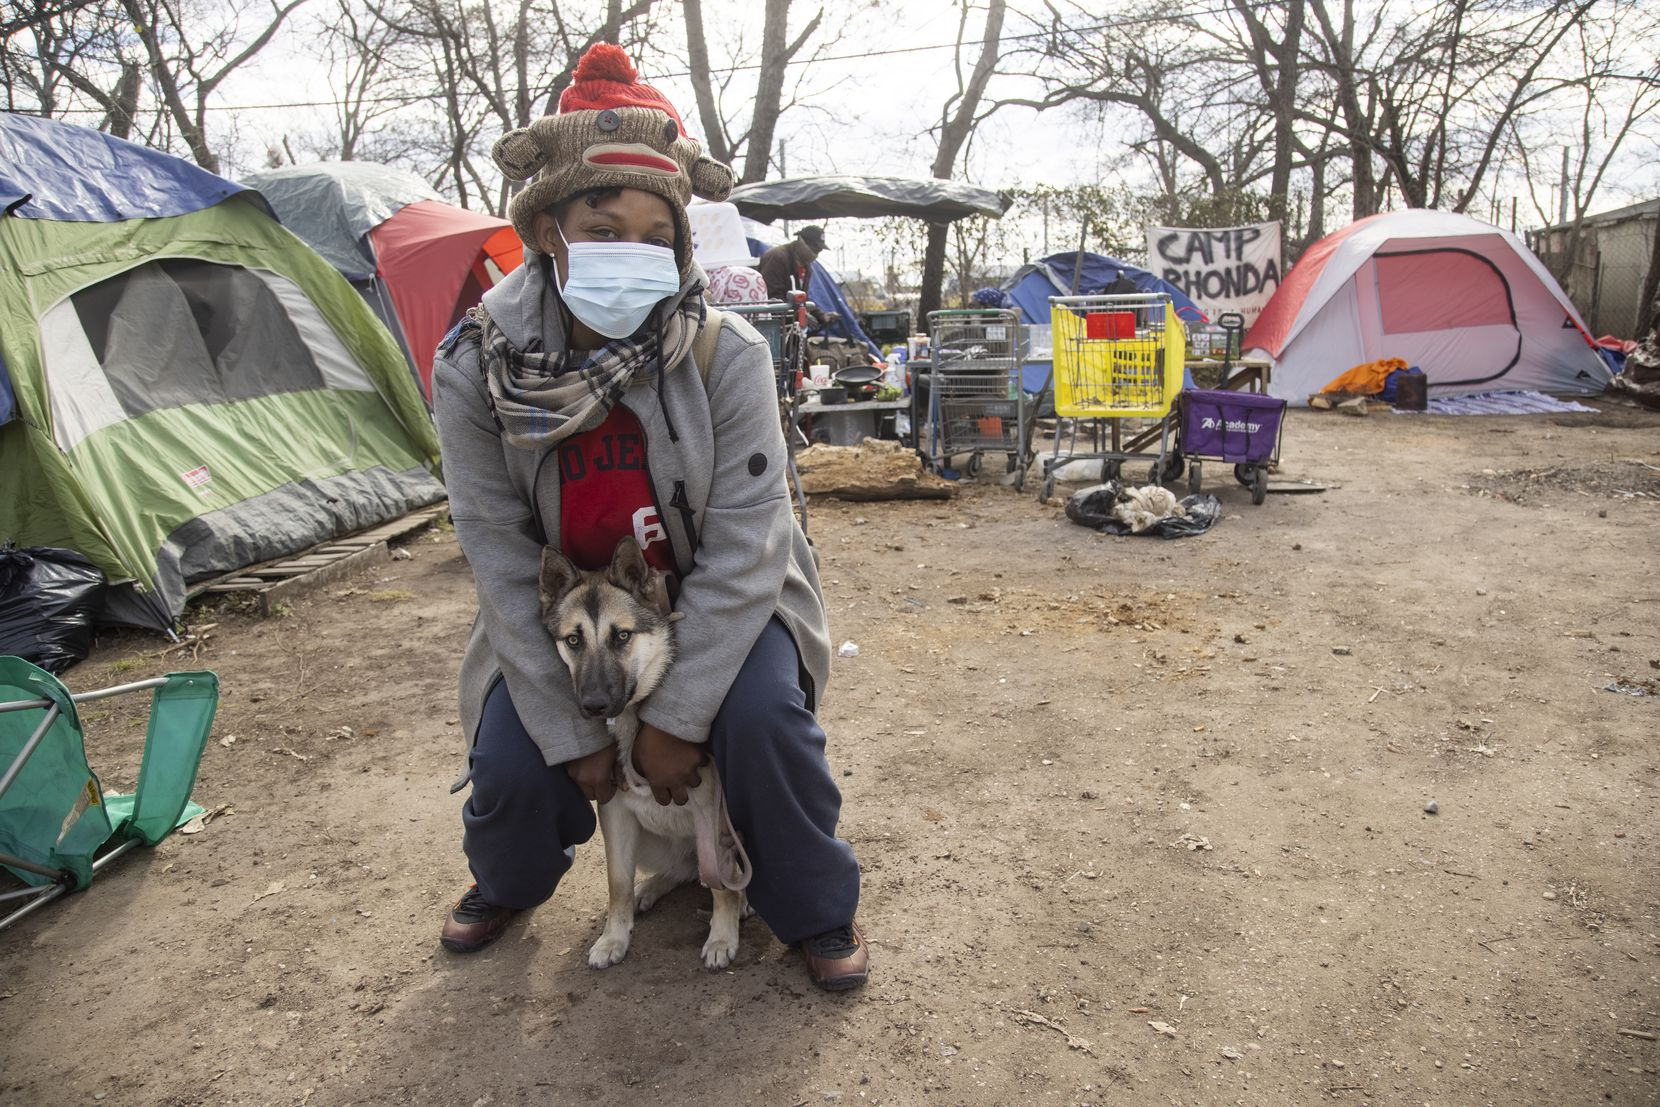 Angel Sharpe poses with her dog Bella at Camp Rhonda, a homeless encampment located on a lot along I-45, on Friday, Feb. 5, 2021 in South Dallas. Sharpe had been living at Camp Rhonda for a week. Last week, city officials sent a notice to the owner of the property, Johnny Aguinaga, stating that the lot needed to be empty by Feb. 6. (Juan Figueroa/ The Dallas Morning News)